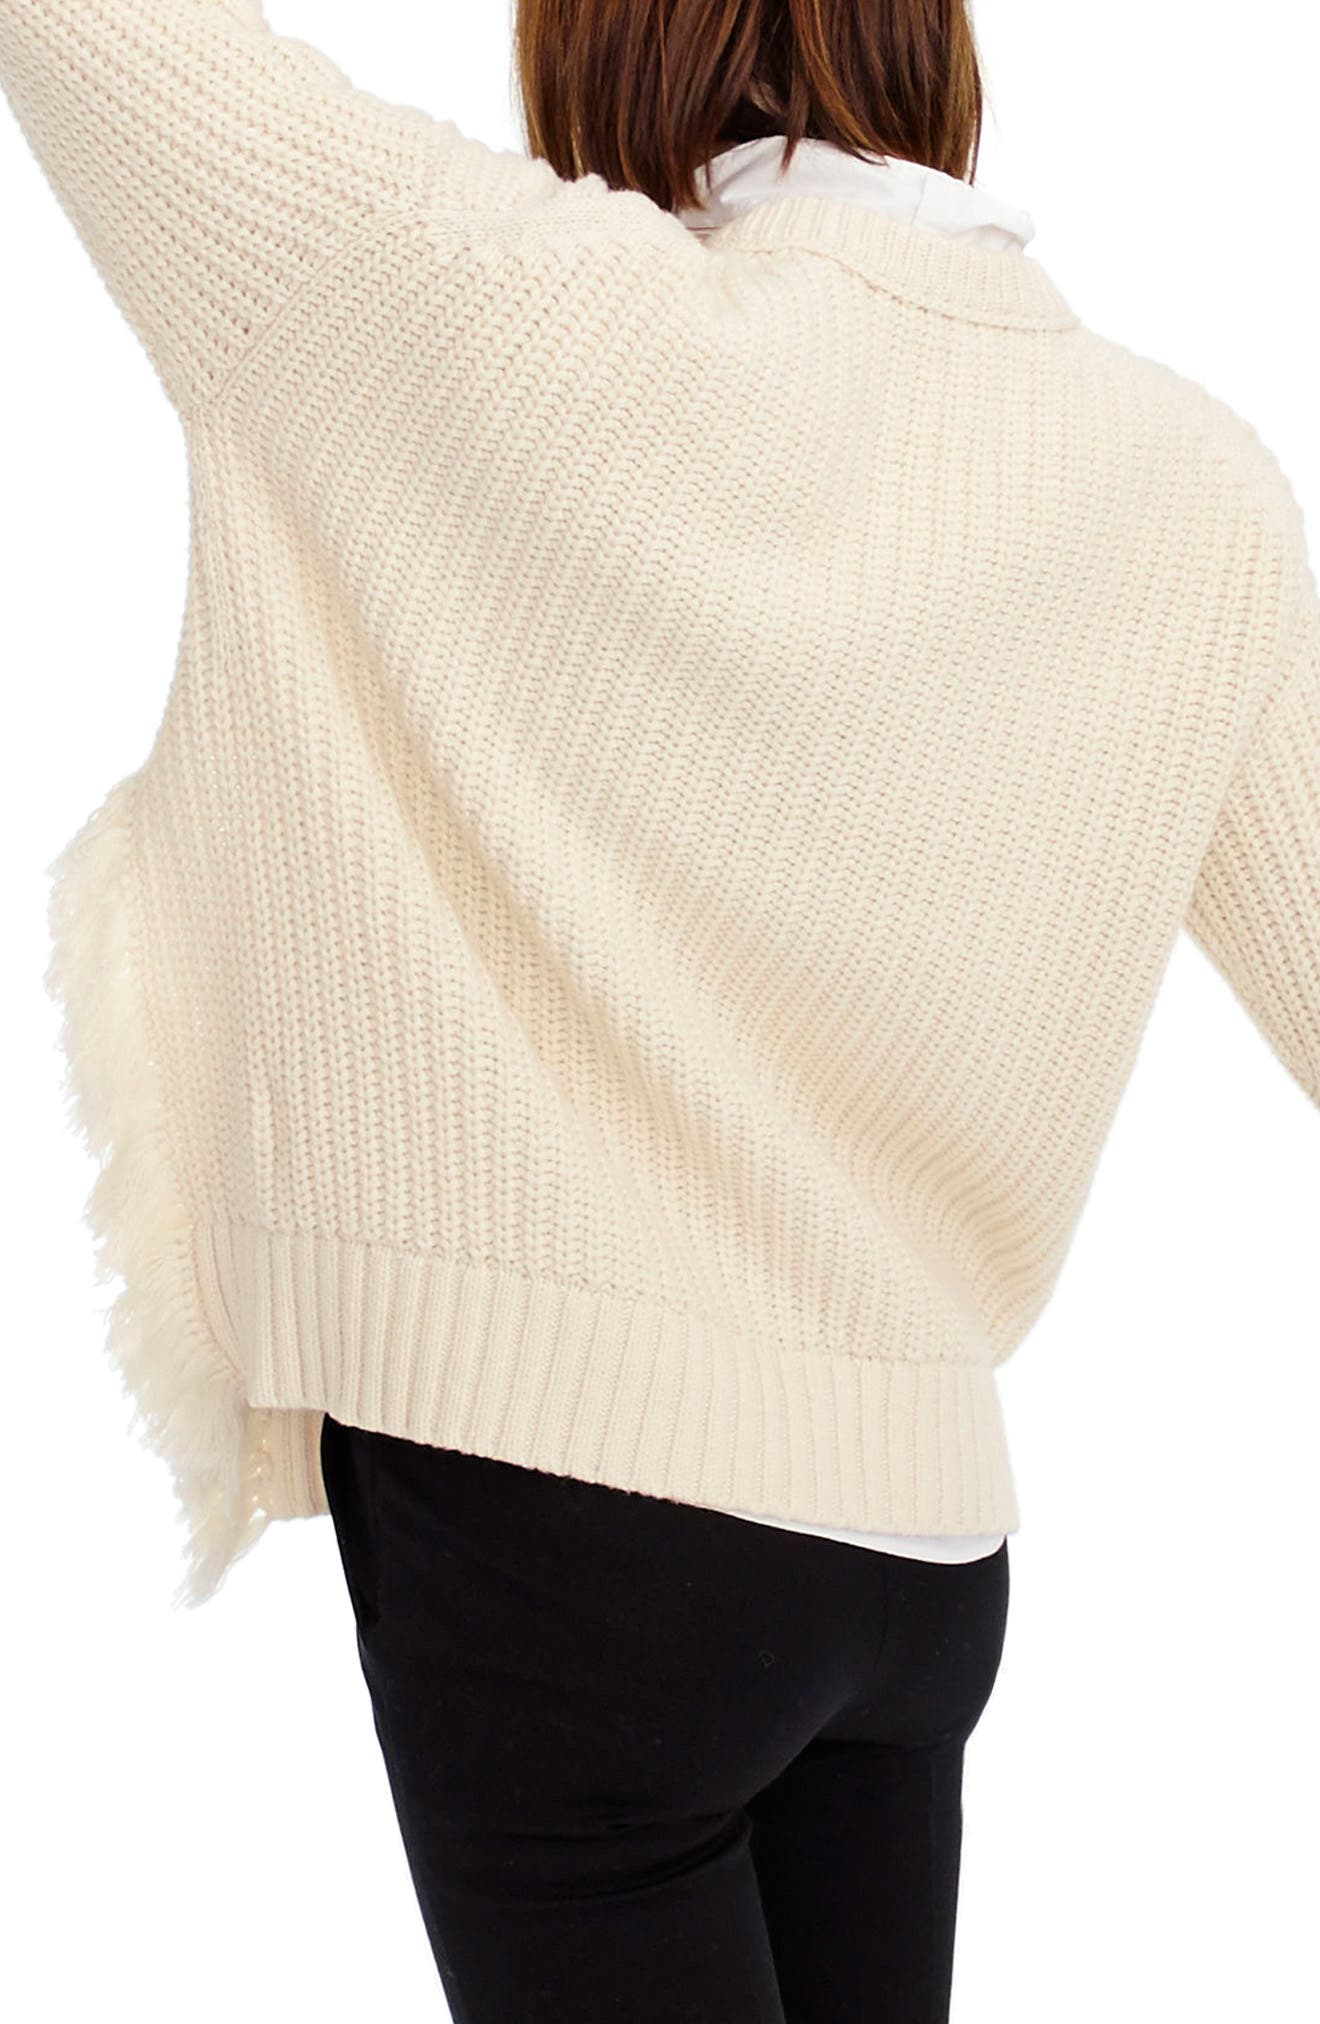 J.Crew Fringe Detail Cable Knit Sweater,                             Alternate thumbnail 2, color,                             Ivory